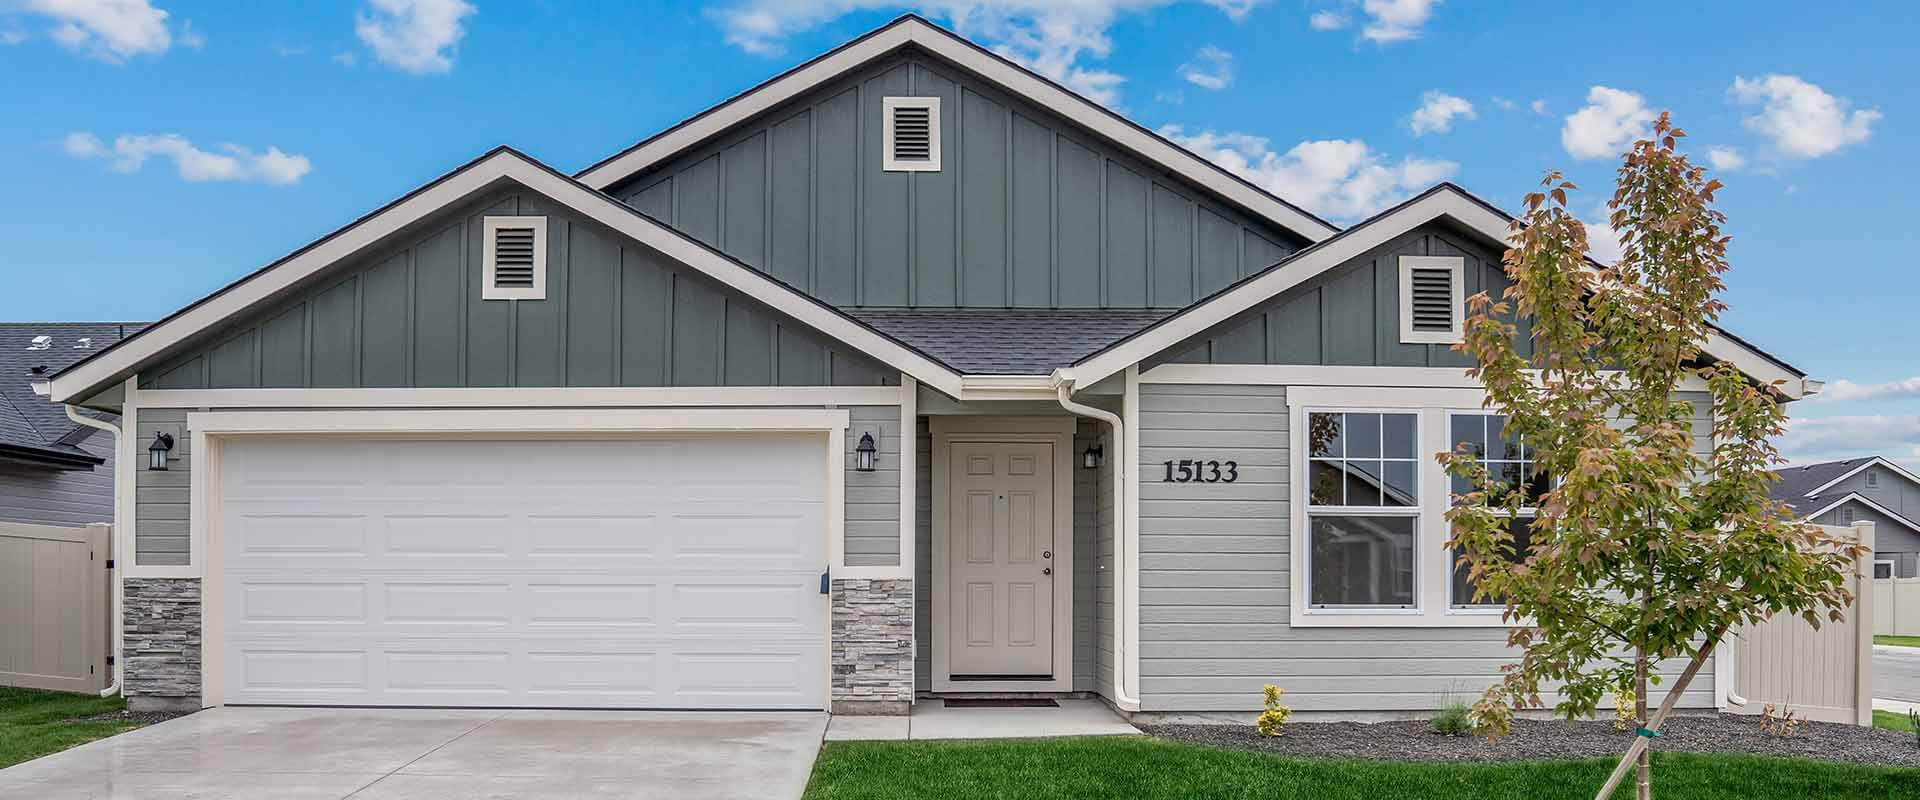 Crestwood_Hubble_Homes_New_Homes_Boise_Exterior3.jpg